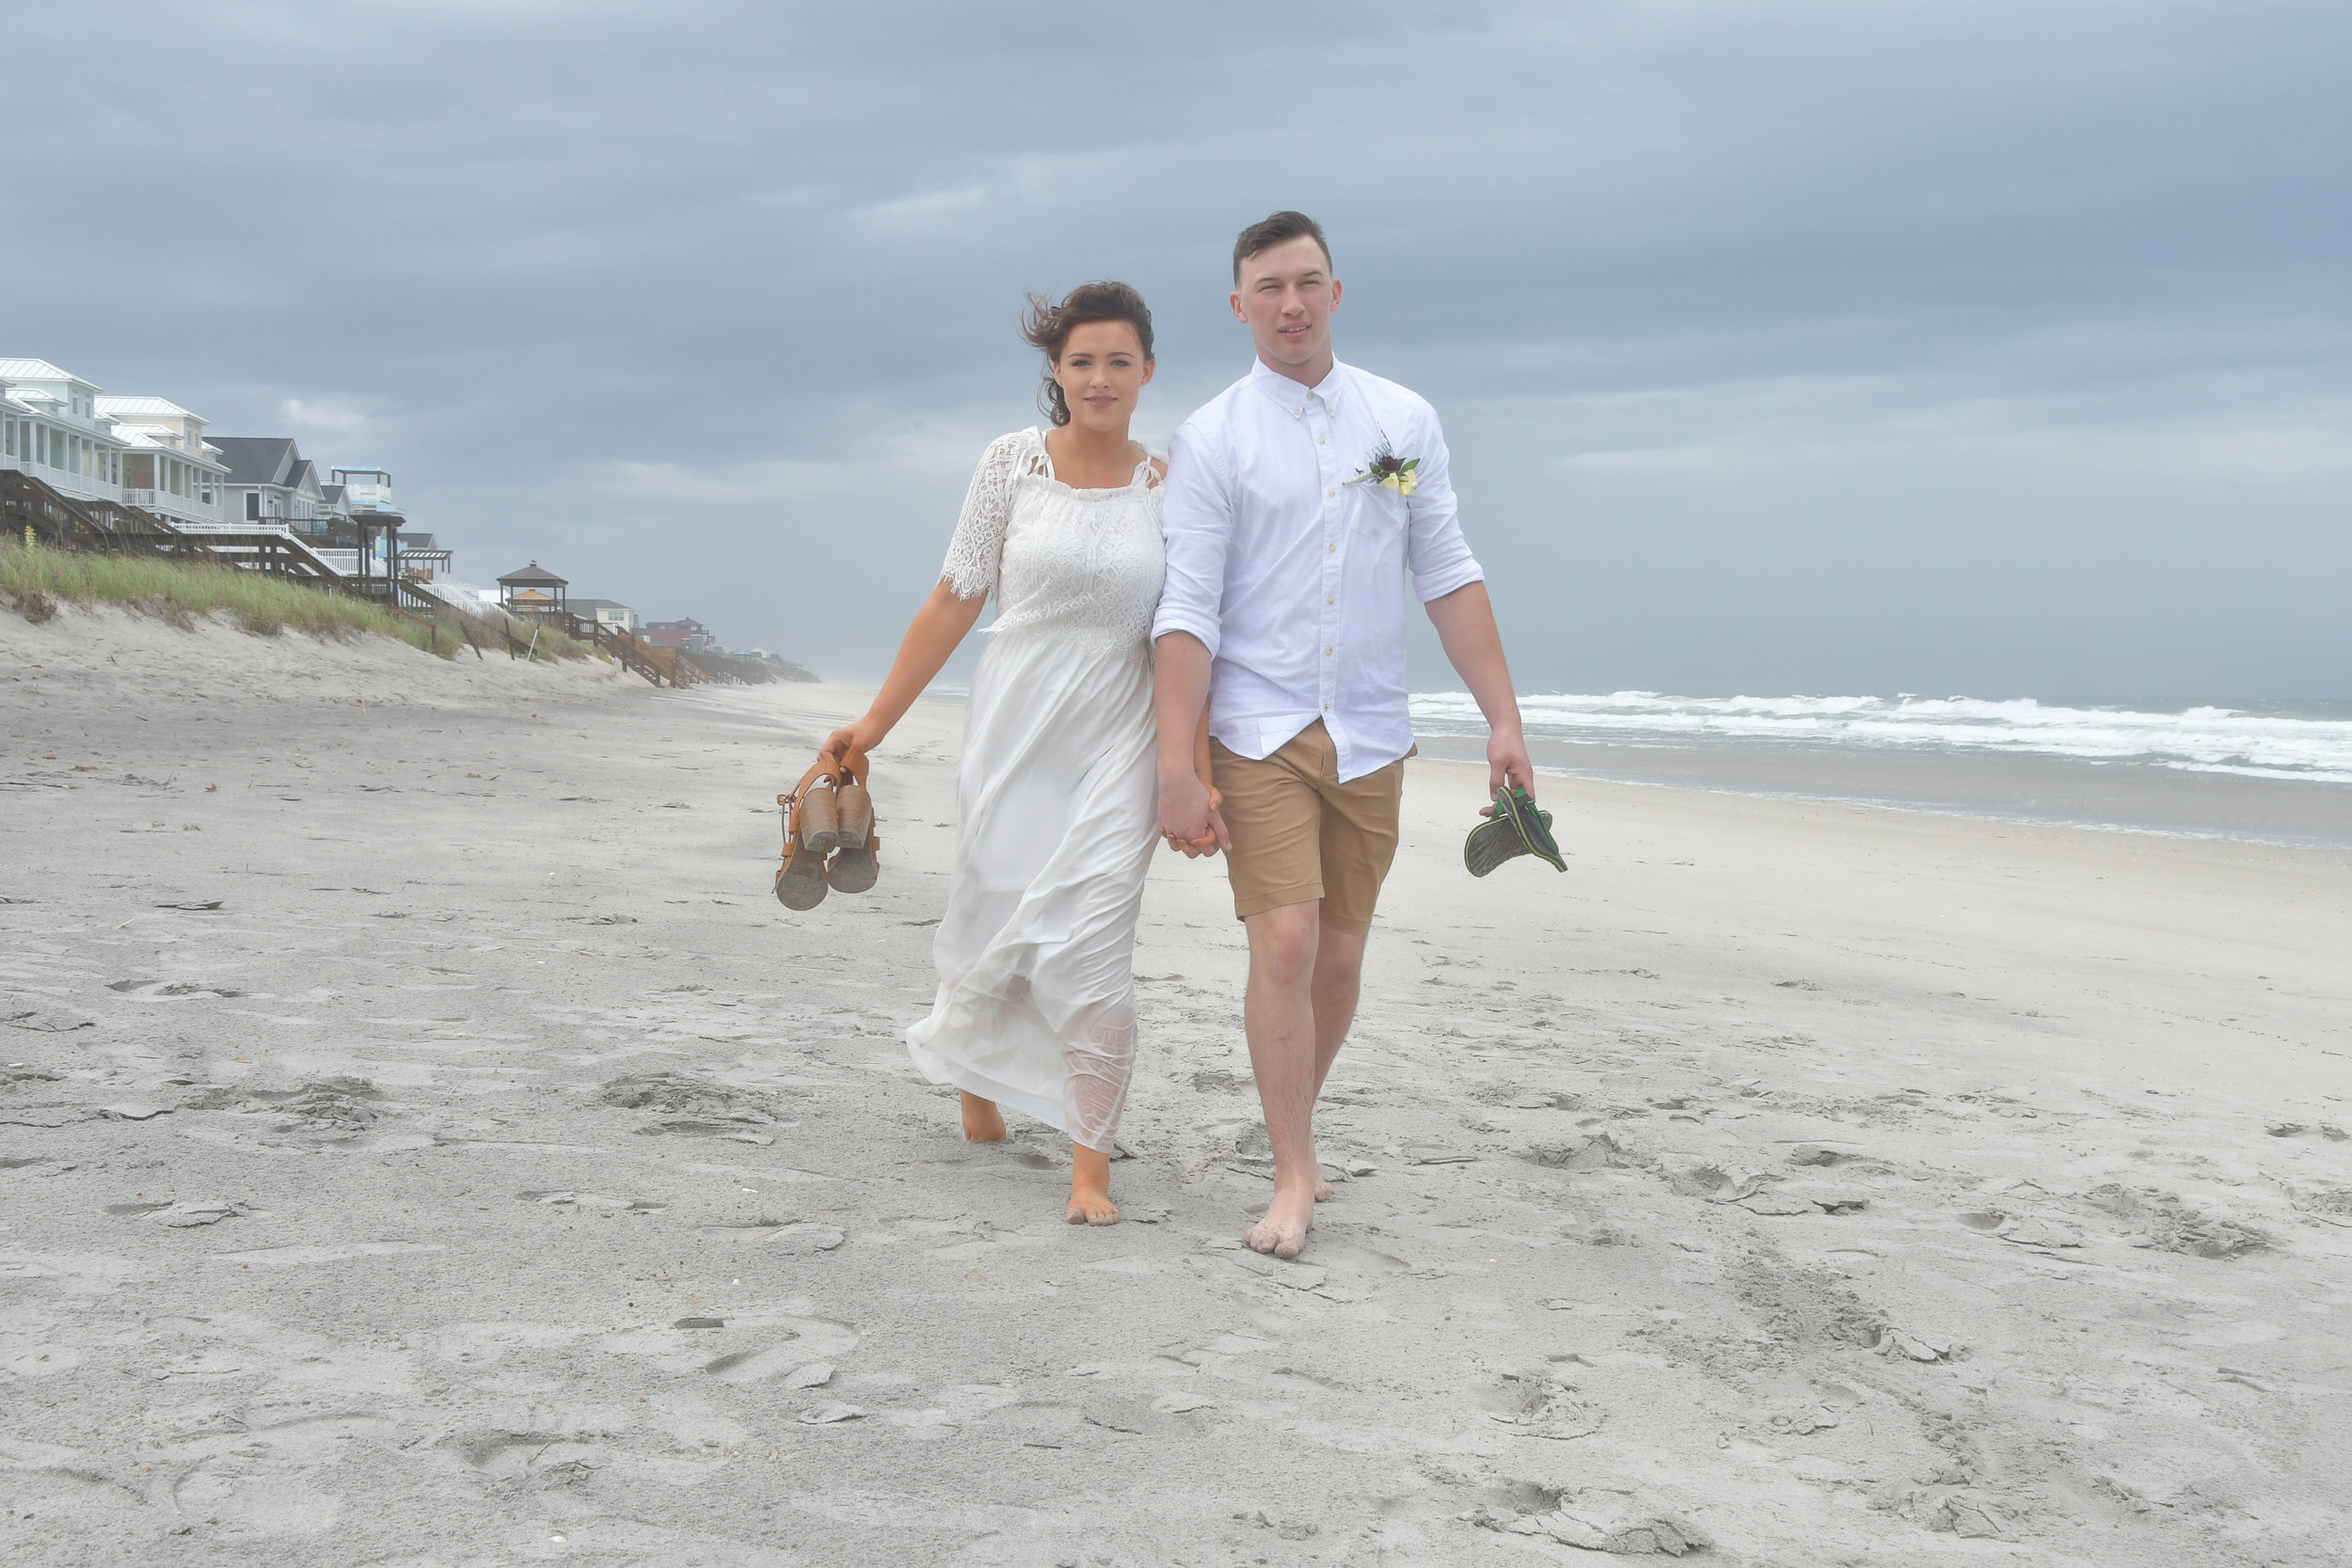 Shoes - Bride and groom walking down the beach carrying their shoes. Surf City, Topsail Island, NC. Billy Beach Photography.